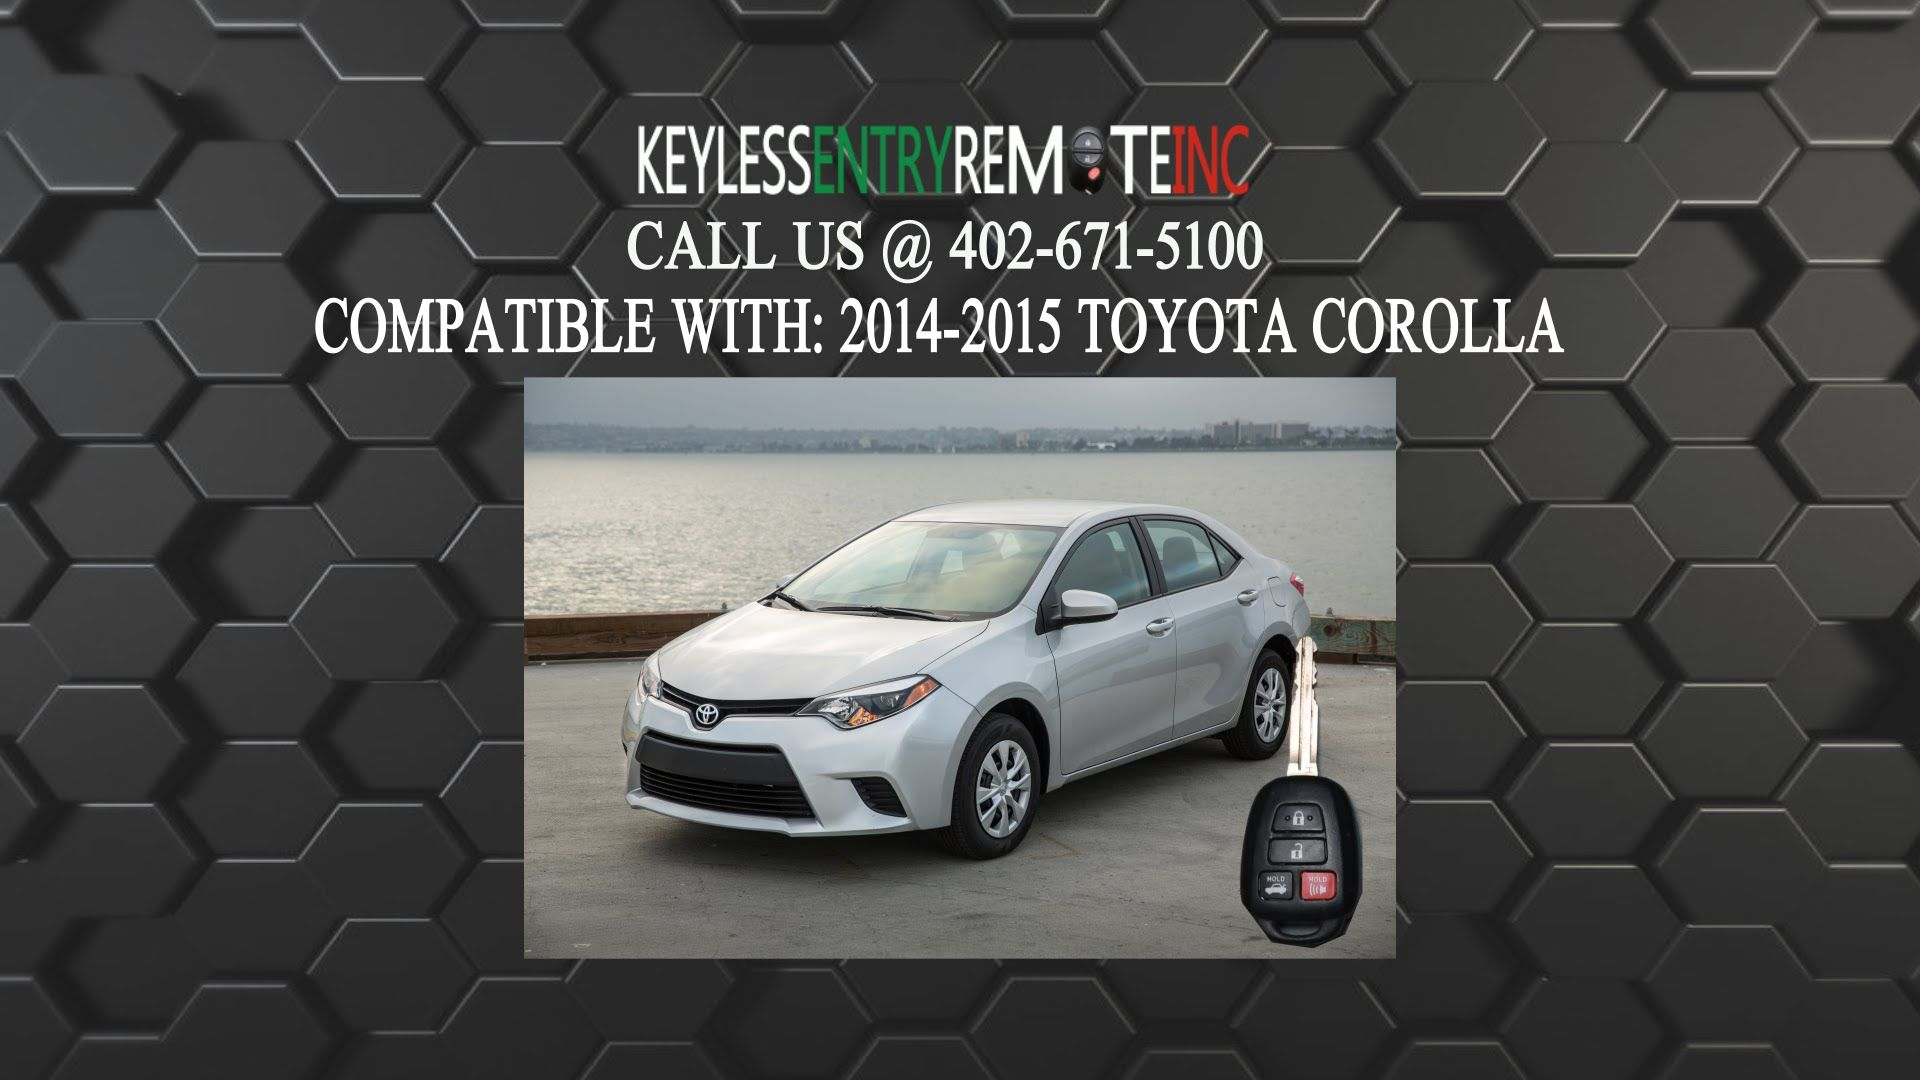 How To Replace A Toyota Corolla Key Fob Battery 2014